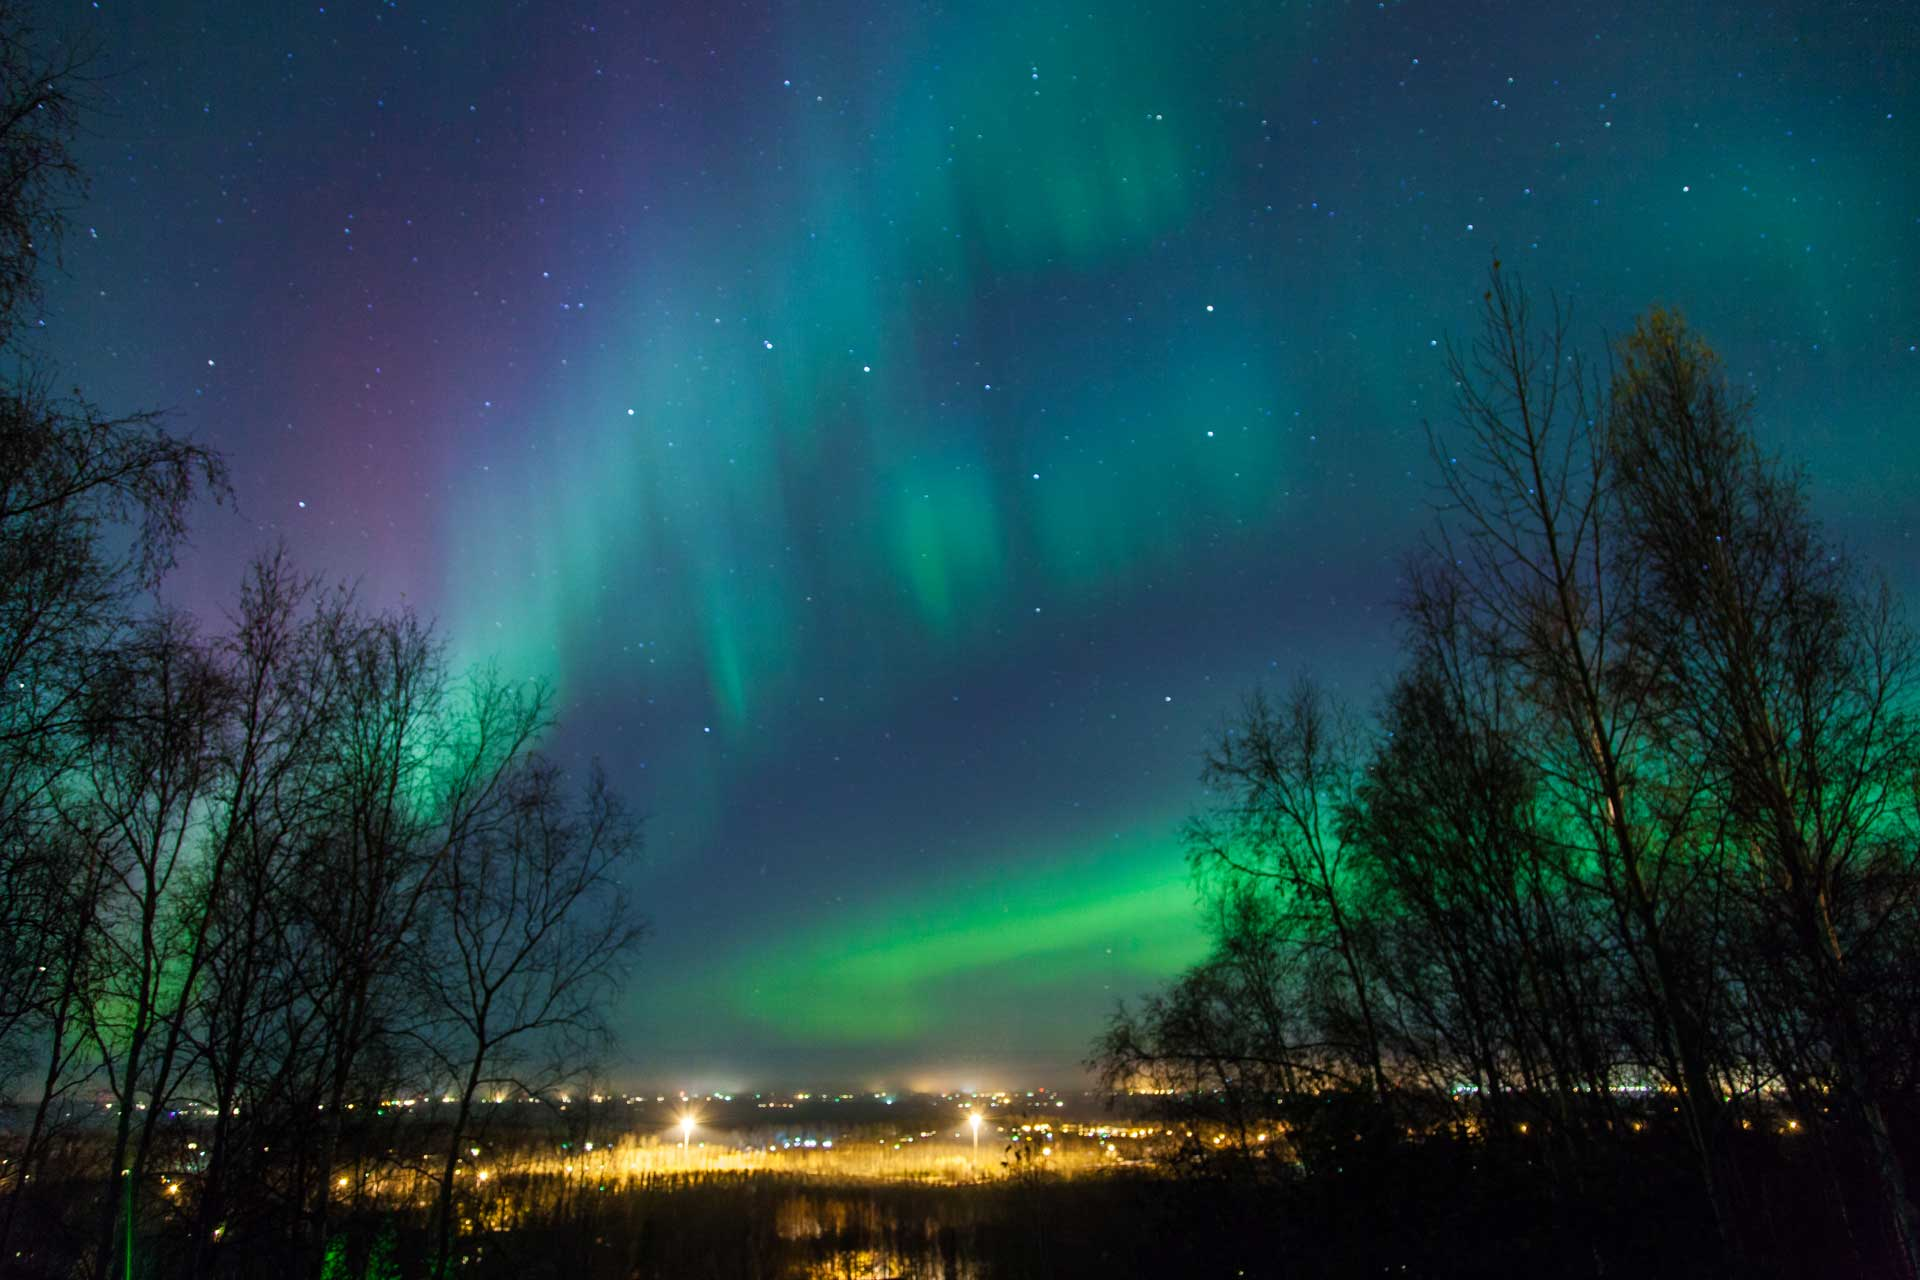 Northern lights and city lights in Scandinavia